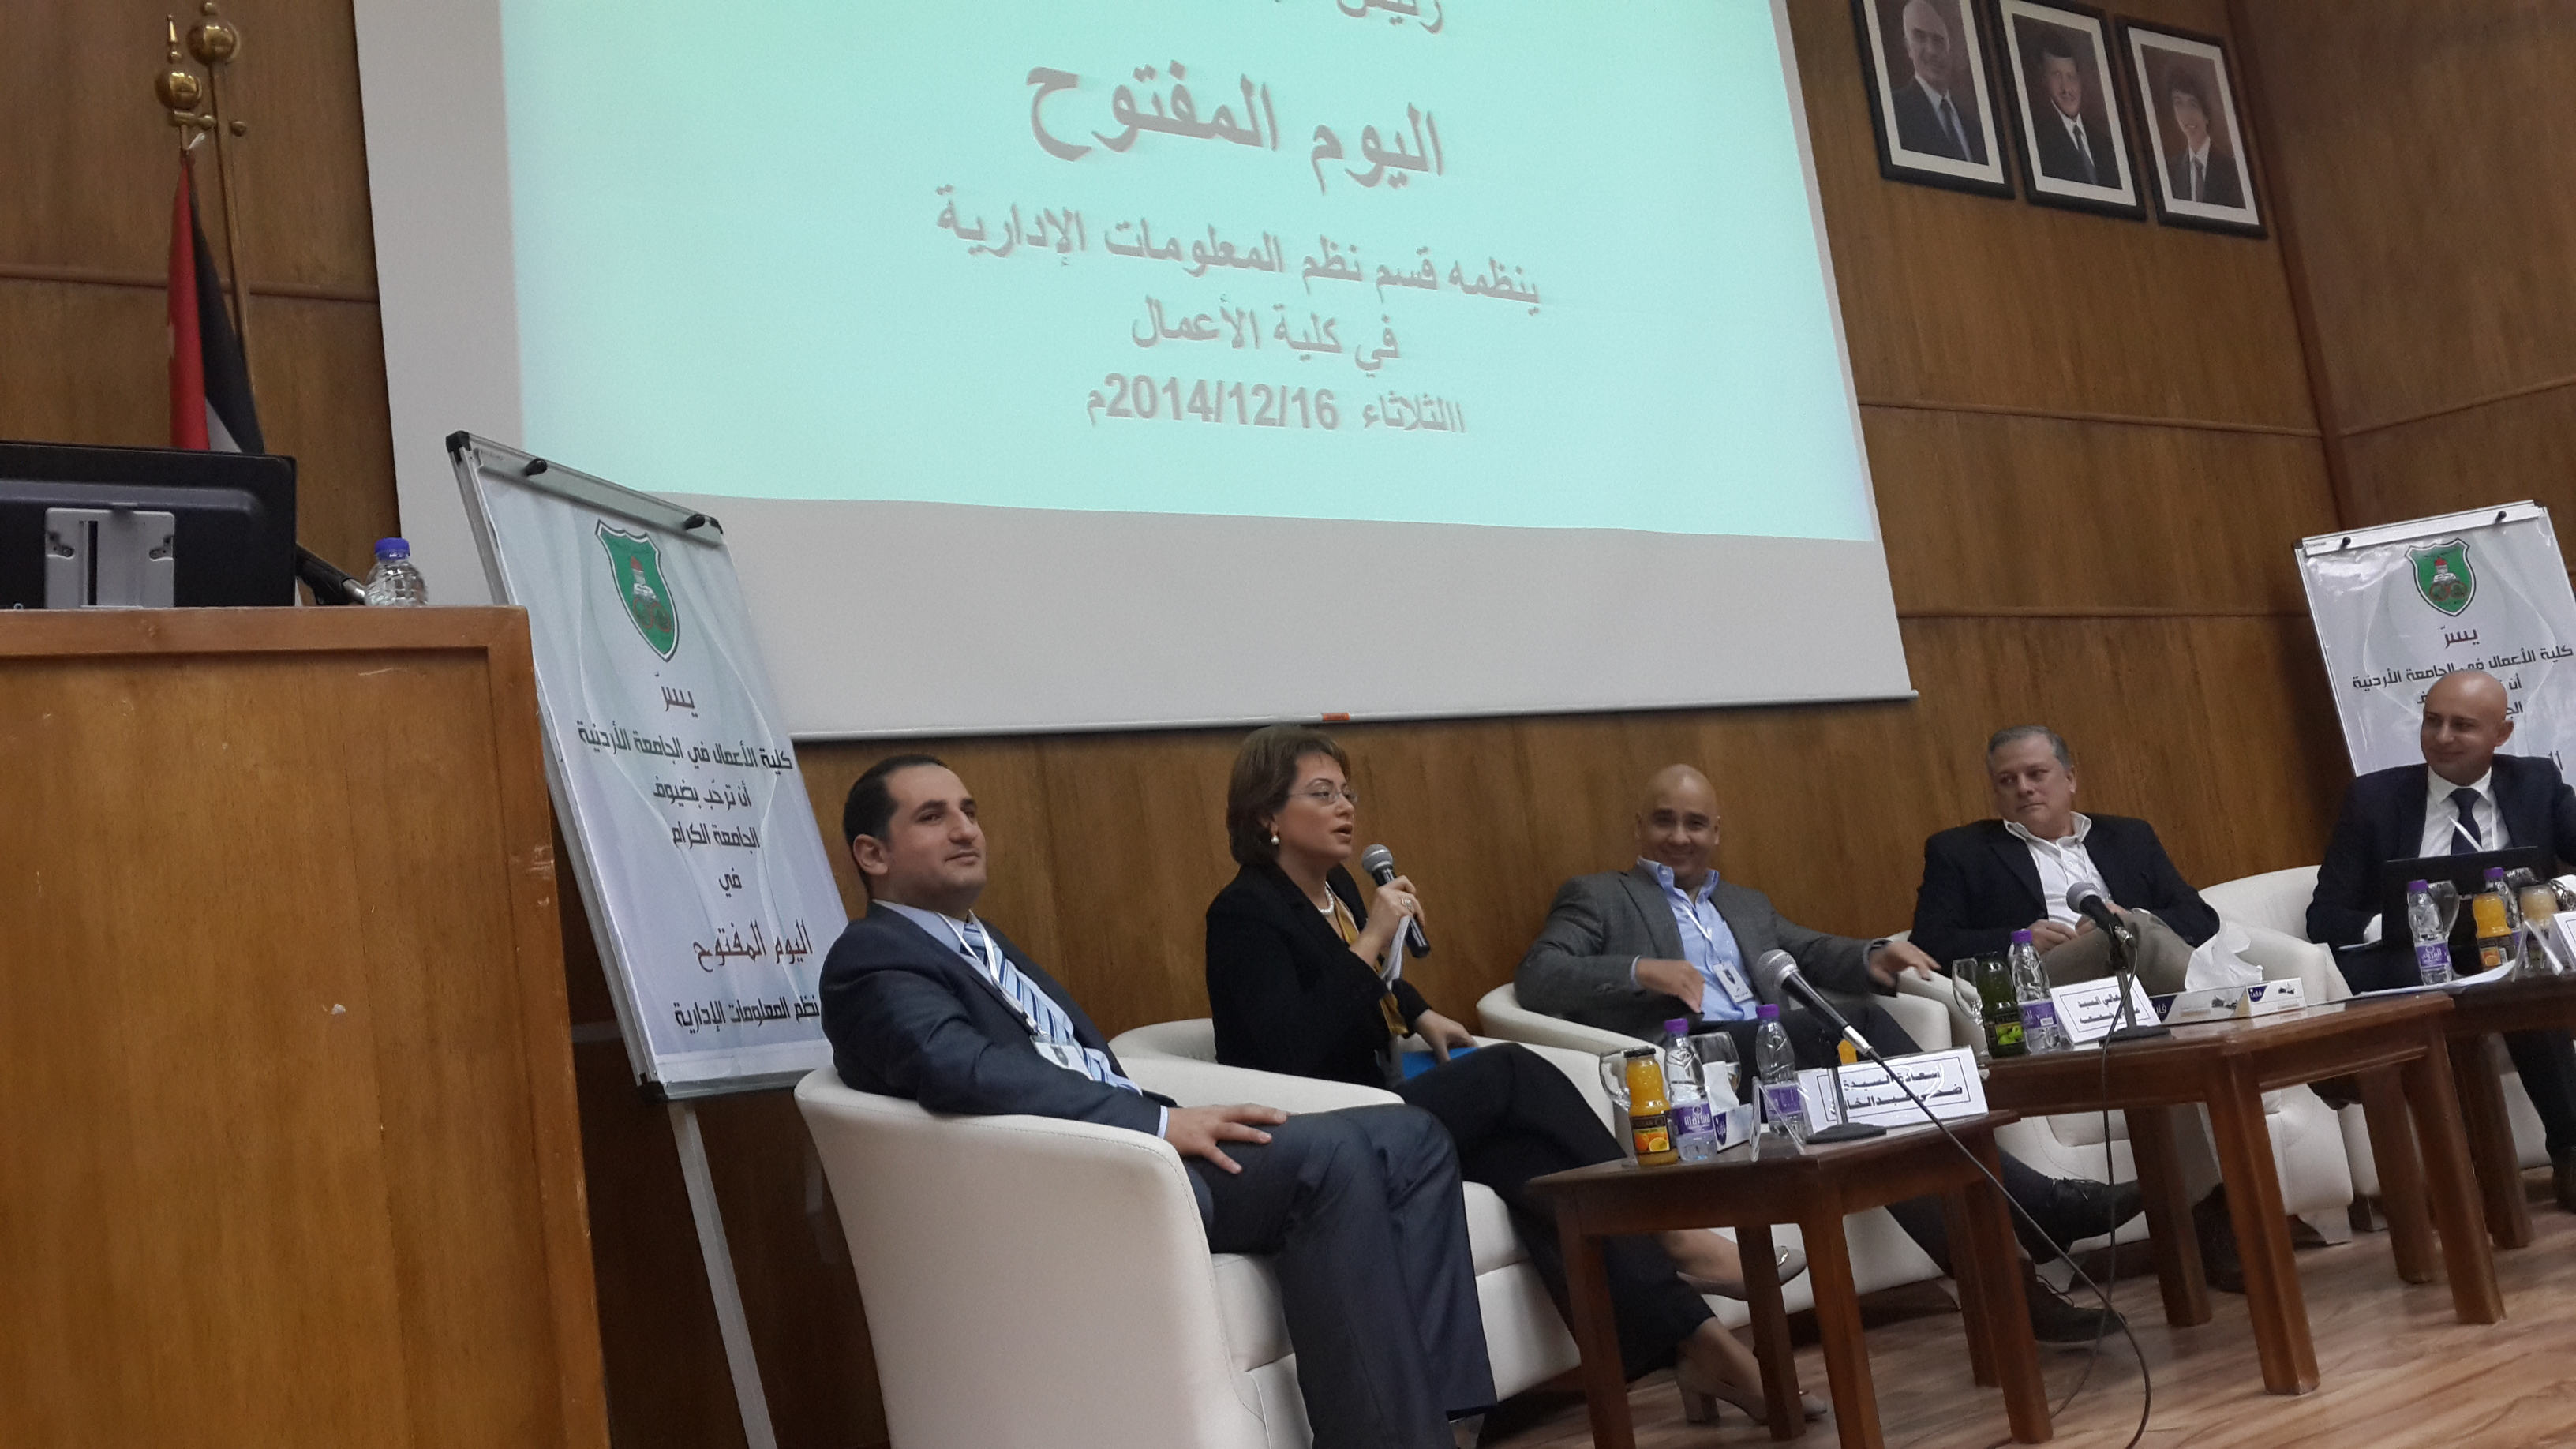 The University of Jordan - Business Faculty hosted Doha Abdelkhaleq as a speaker at the MIS Open Day for IT Students